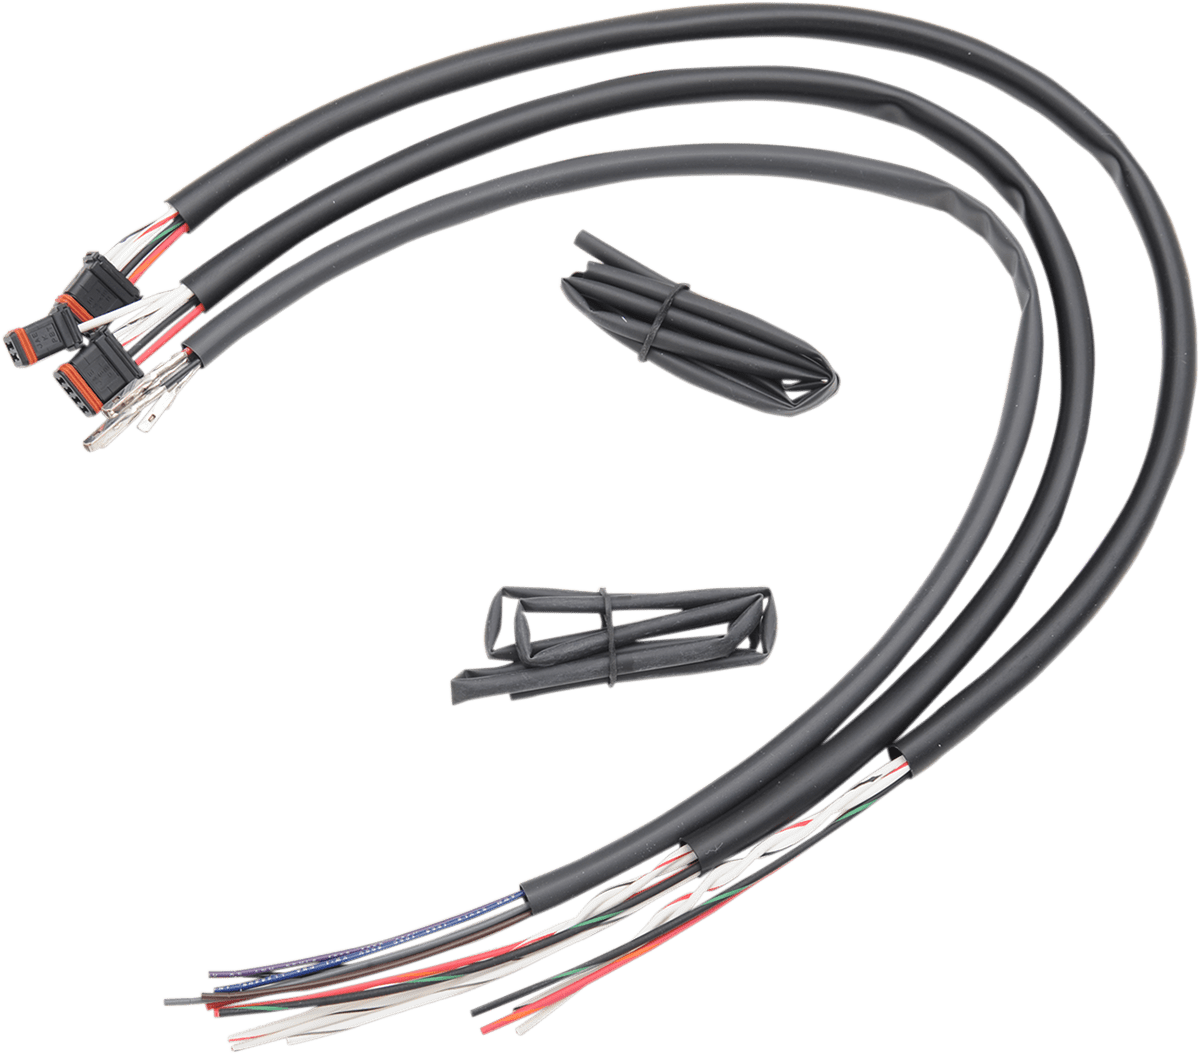 Wiring Extension 14 15fl